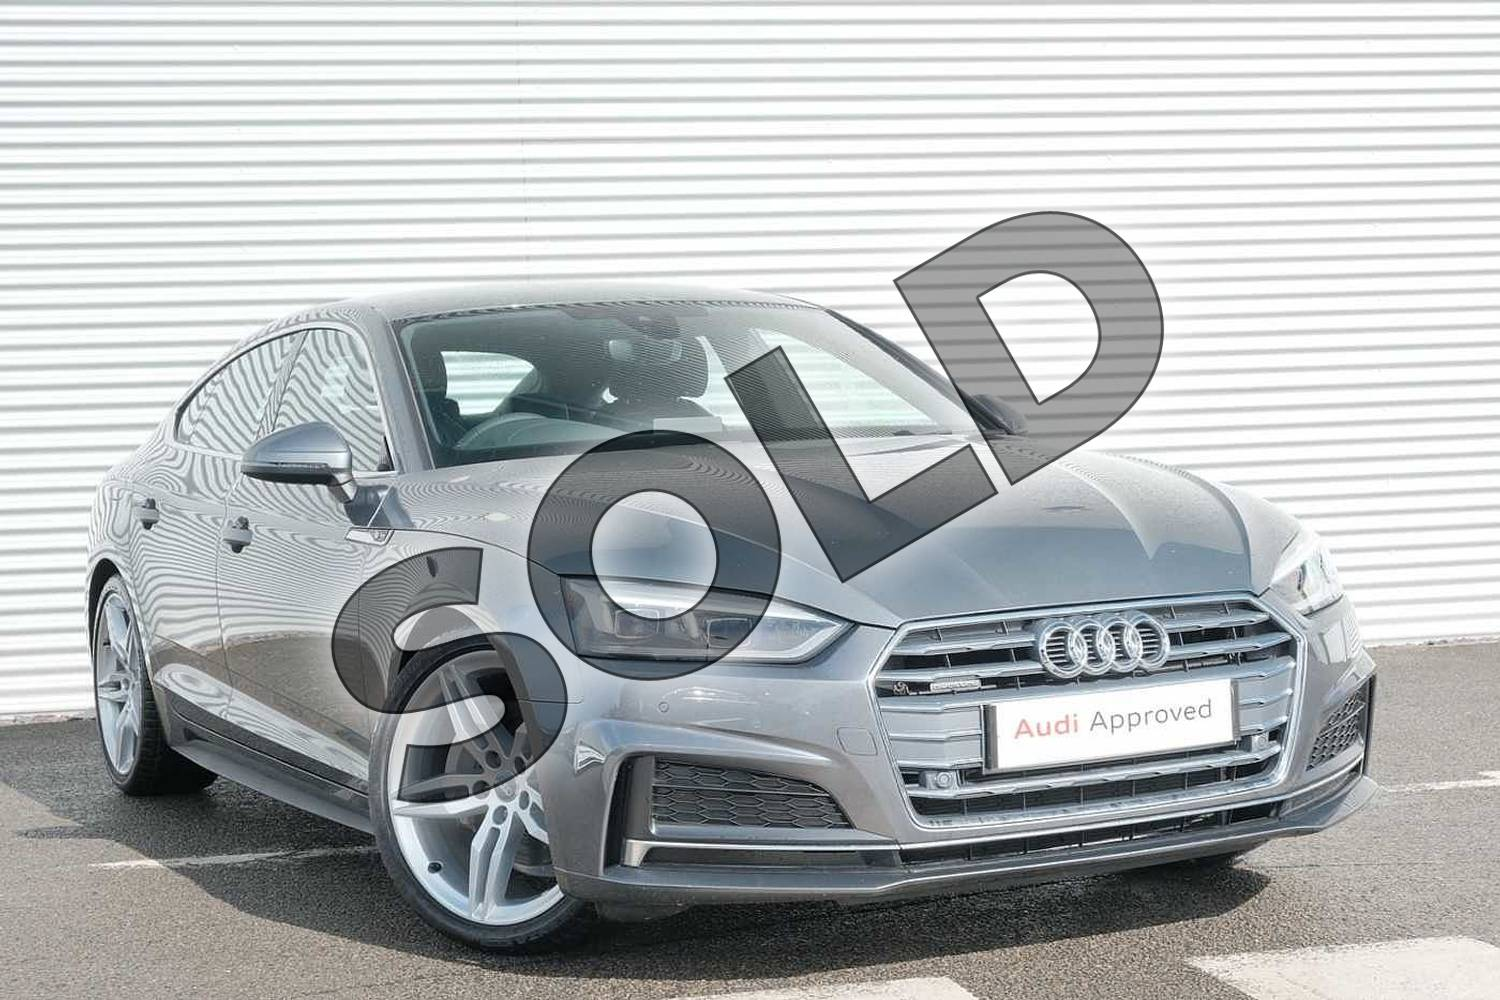 2020 Audi A5 Diesel Sportback 40 TDI Quattro S Line 5dr S Tronic in Monsoon Grey Metallic at Coventry Audi